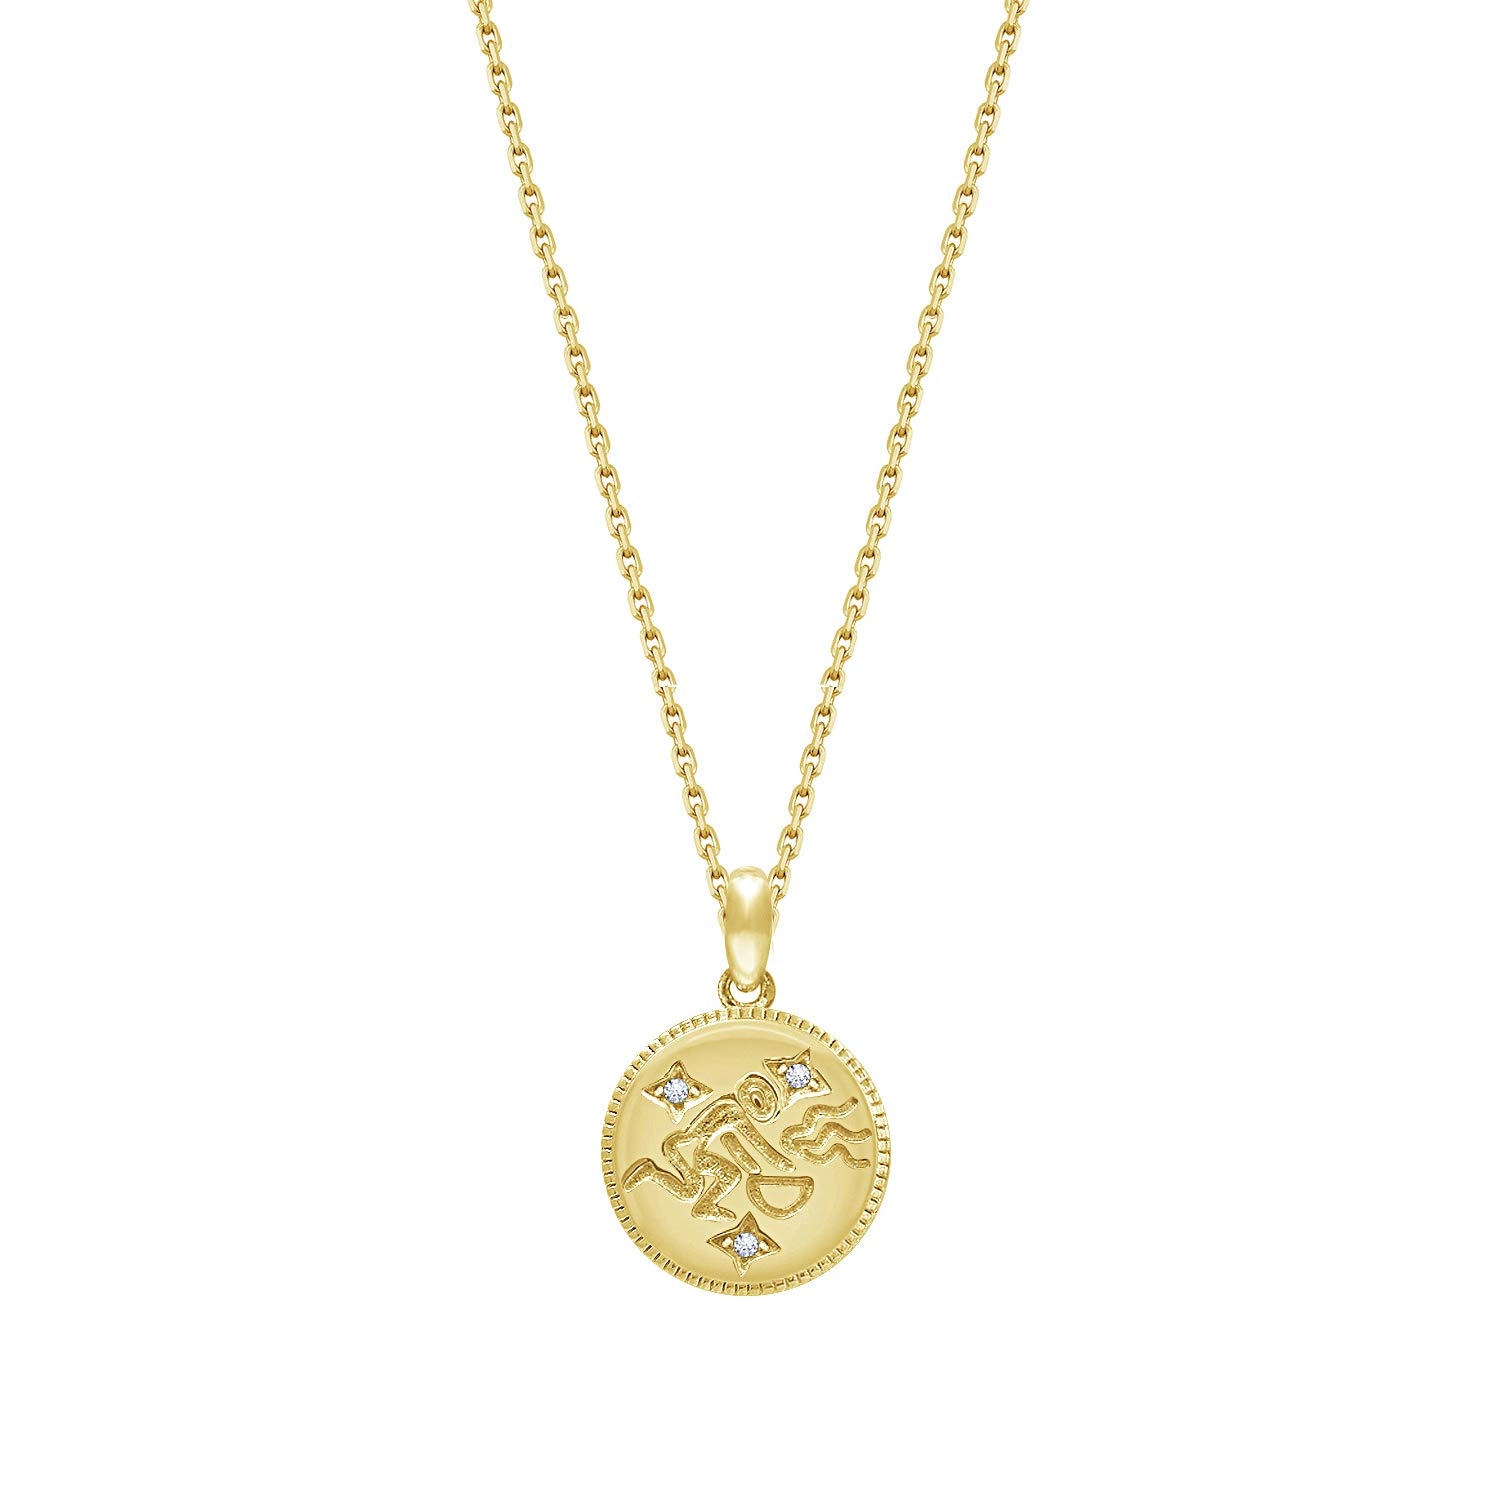 "J'ADMIRE 14K Yellow Gold Plated Sterling Silver Swarovski Zirconia Zodiac Stars Pendant Necklace (16"" + 2"" extender)"